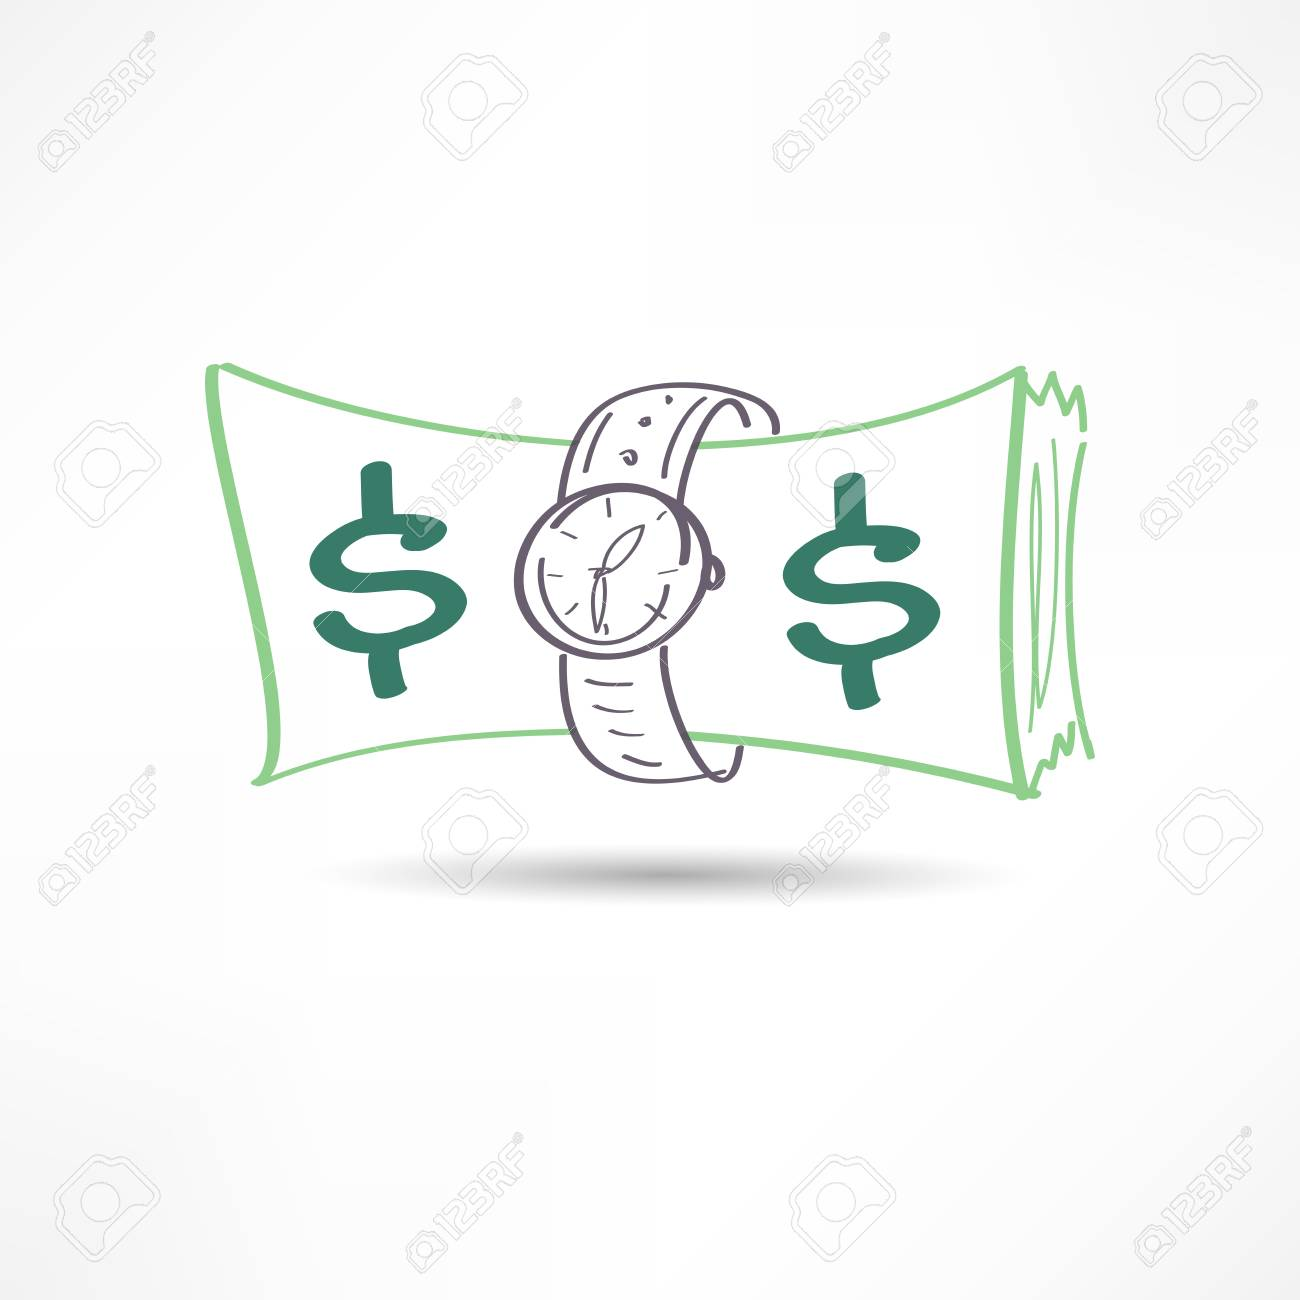 time is money icon Stock Vector - 21449670